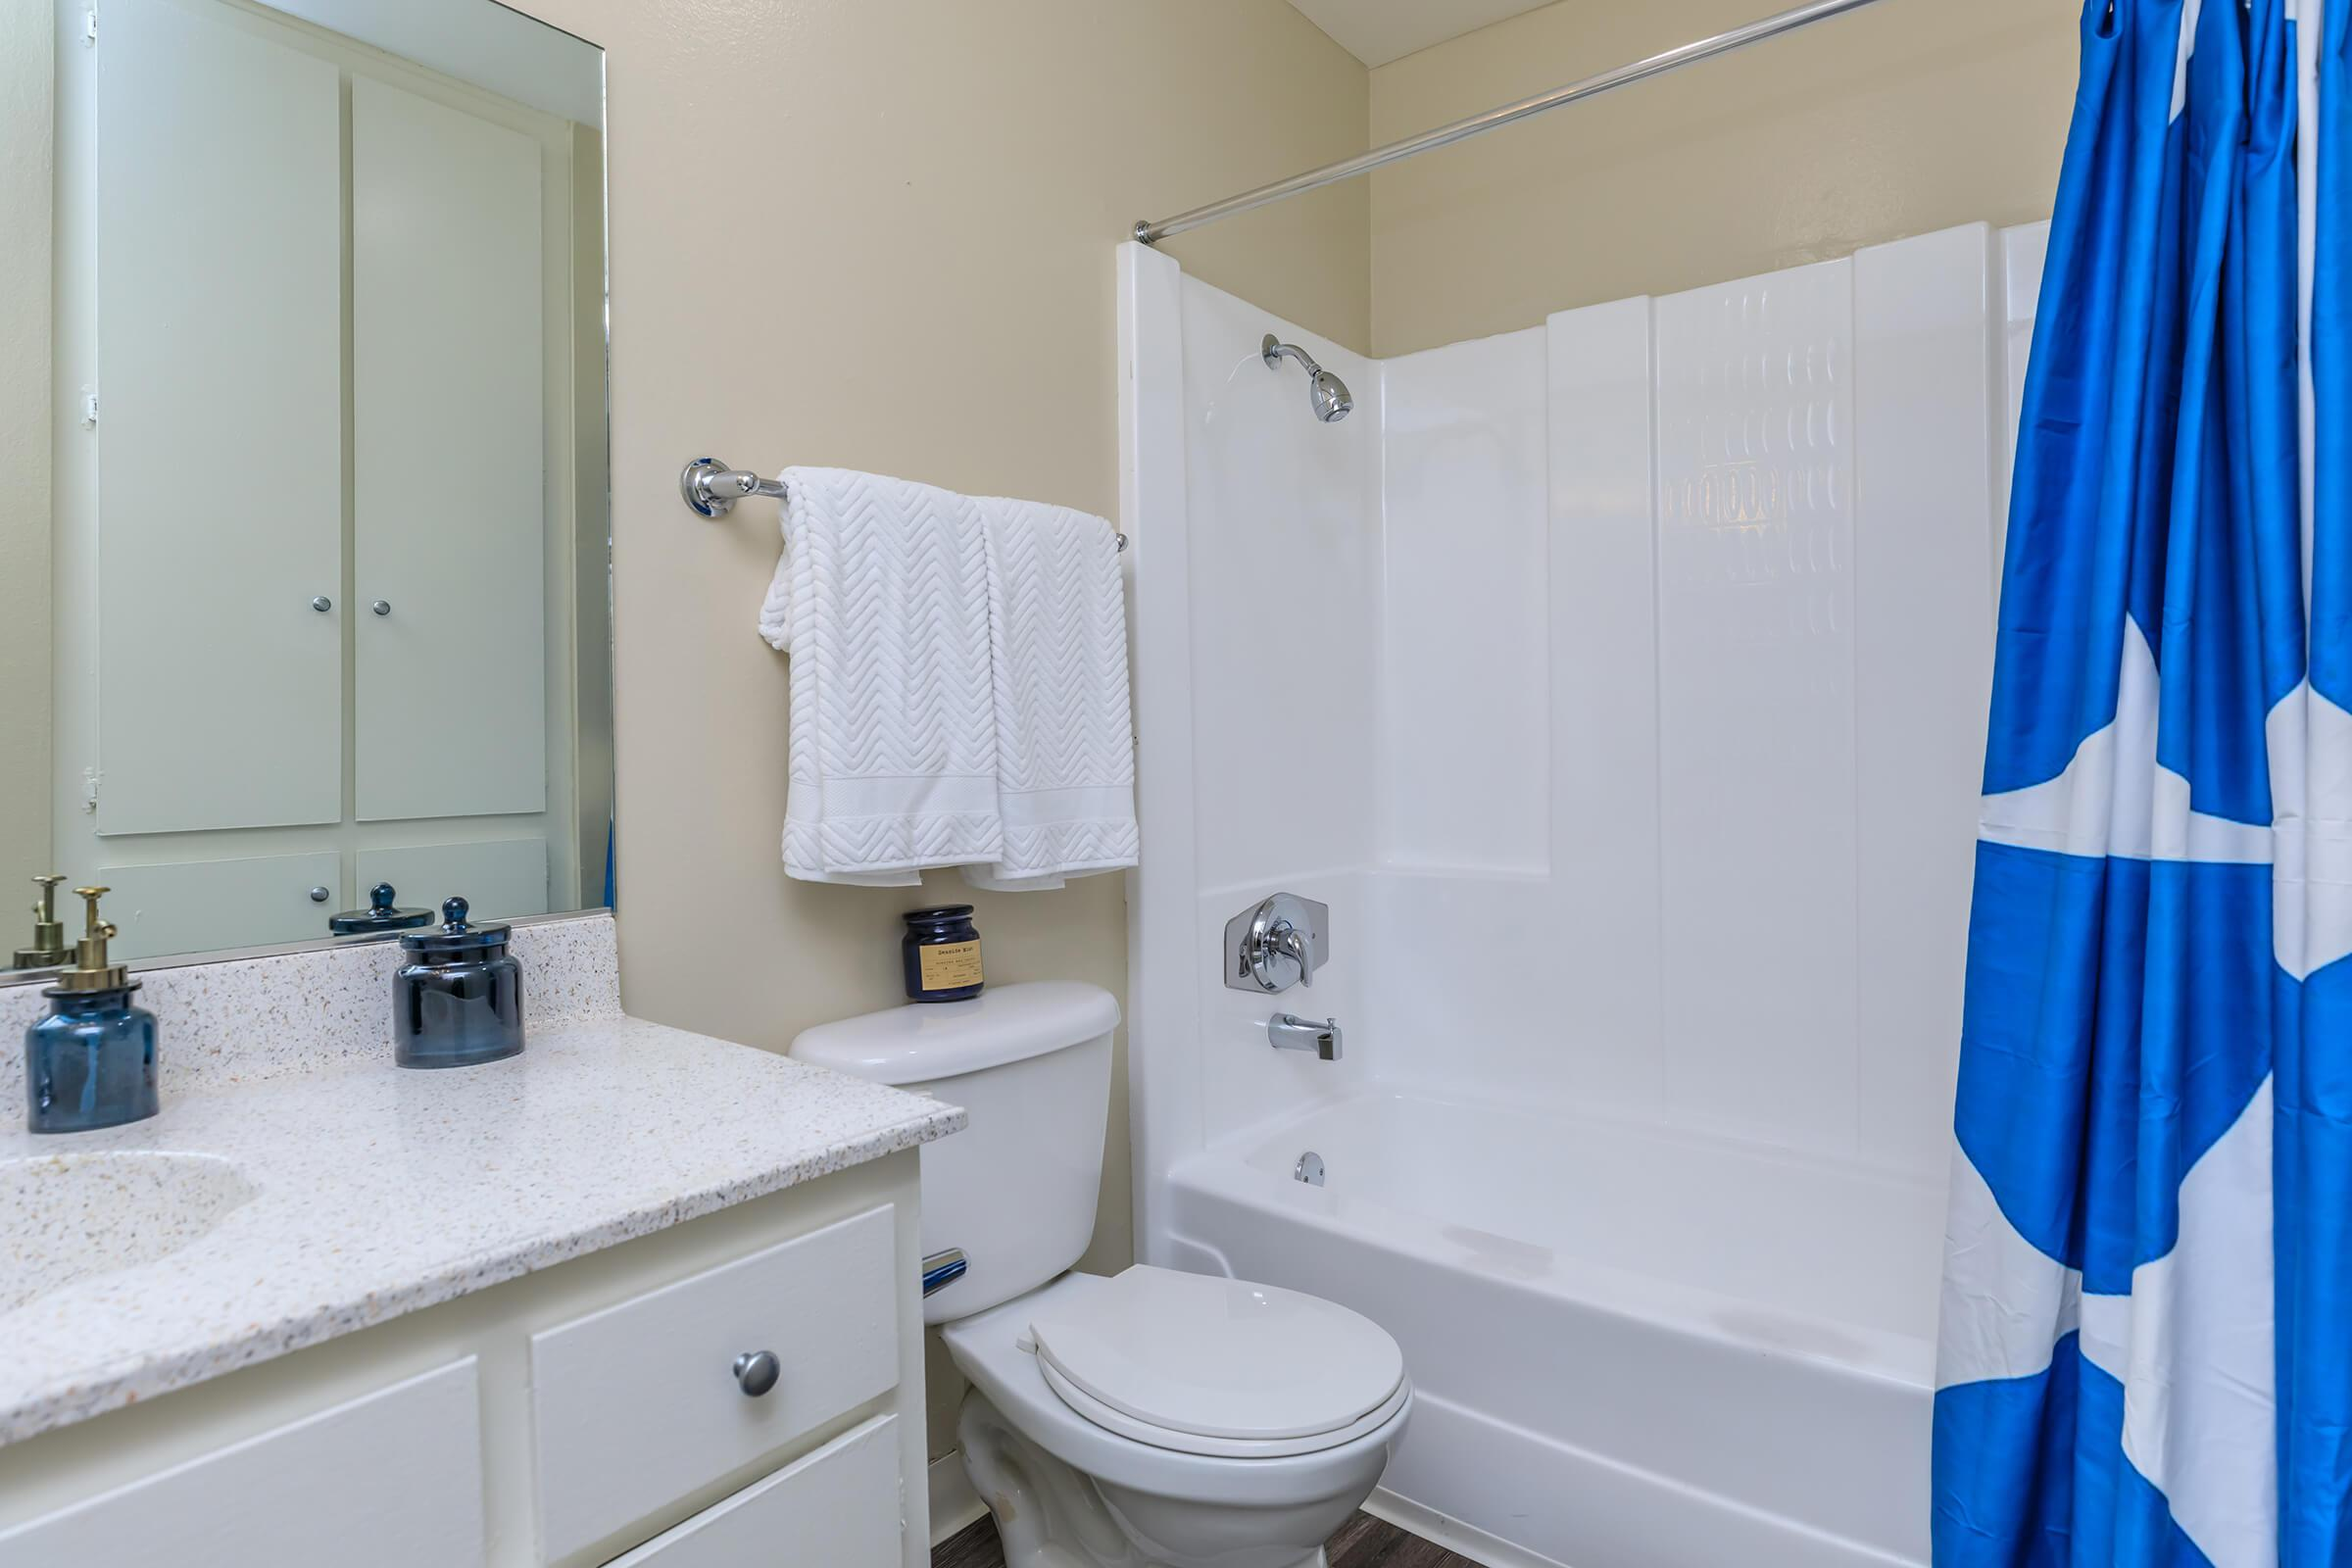 Bathroom with blue and white shower curtain